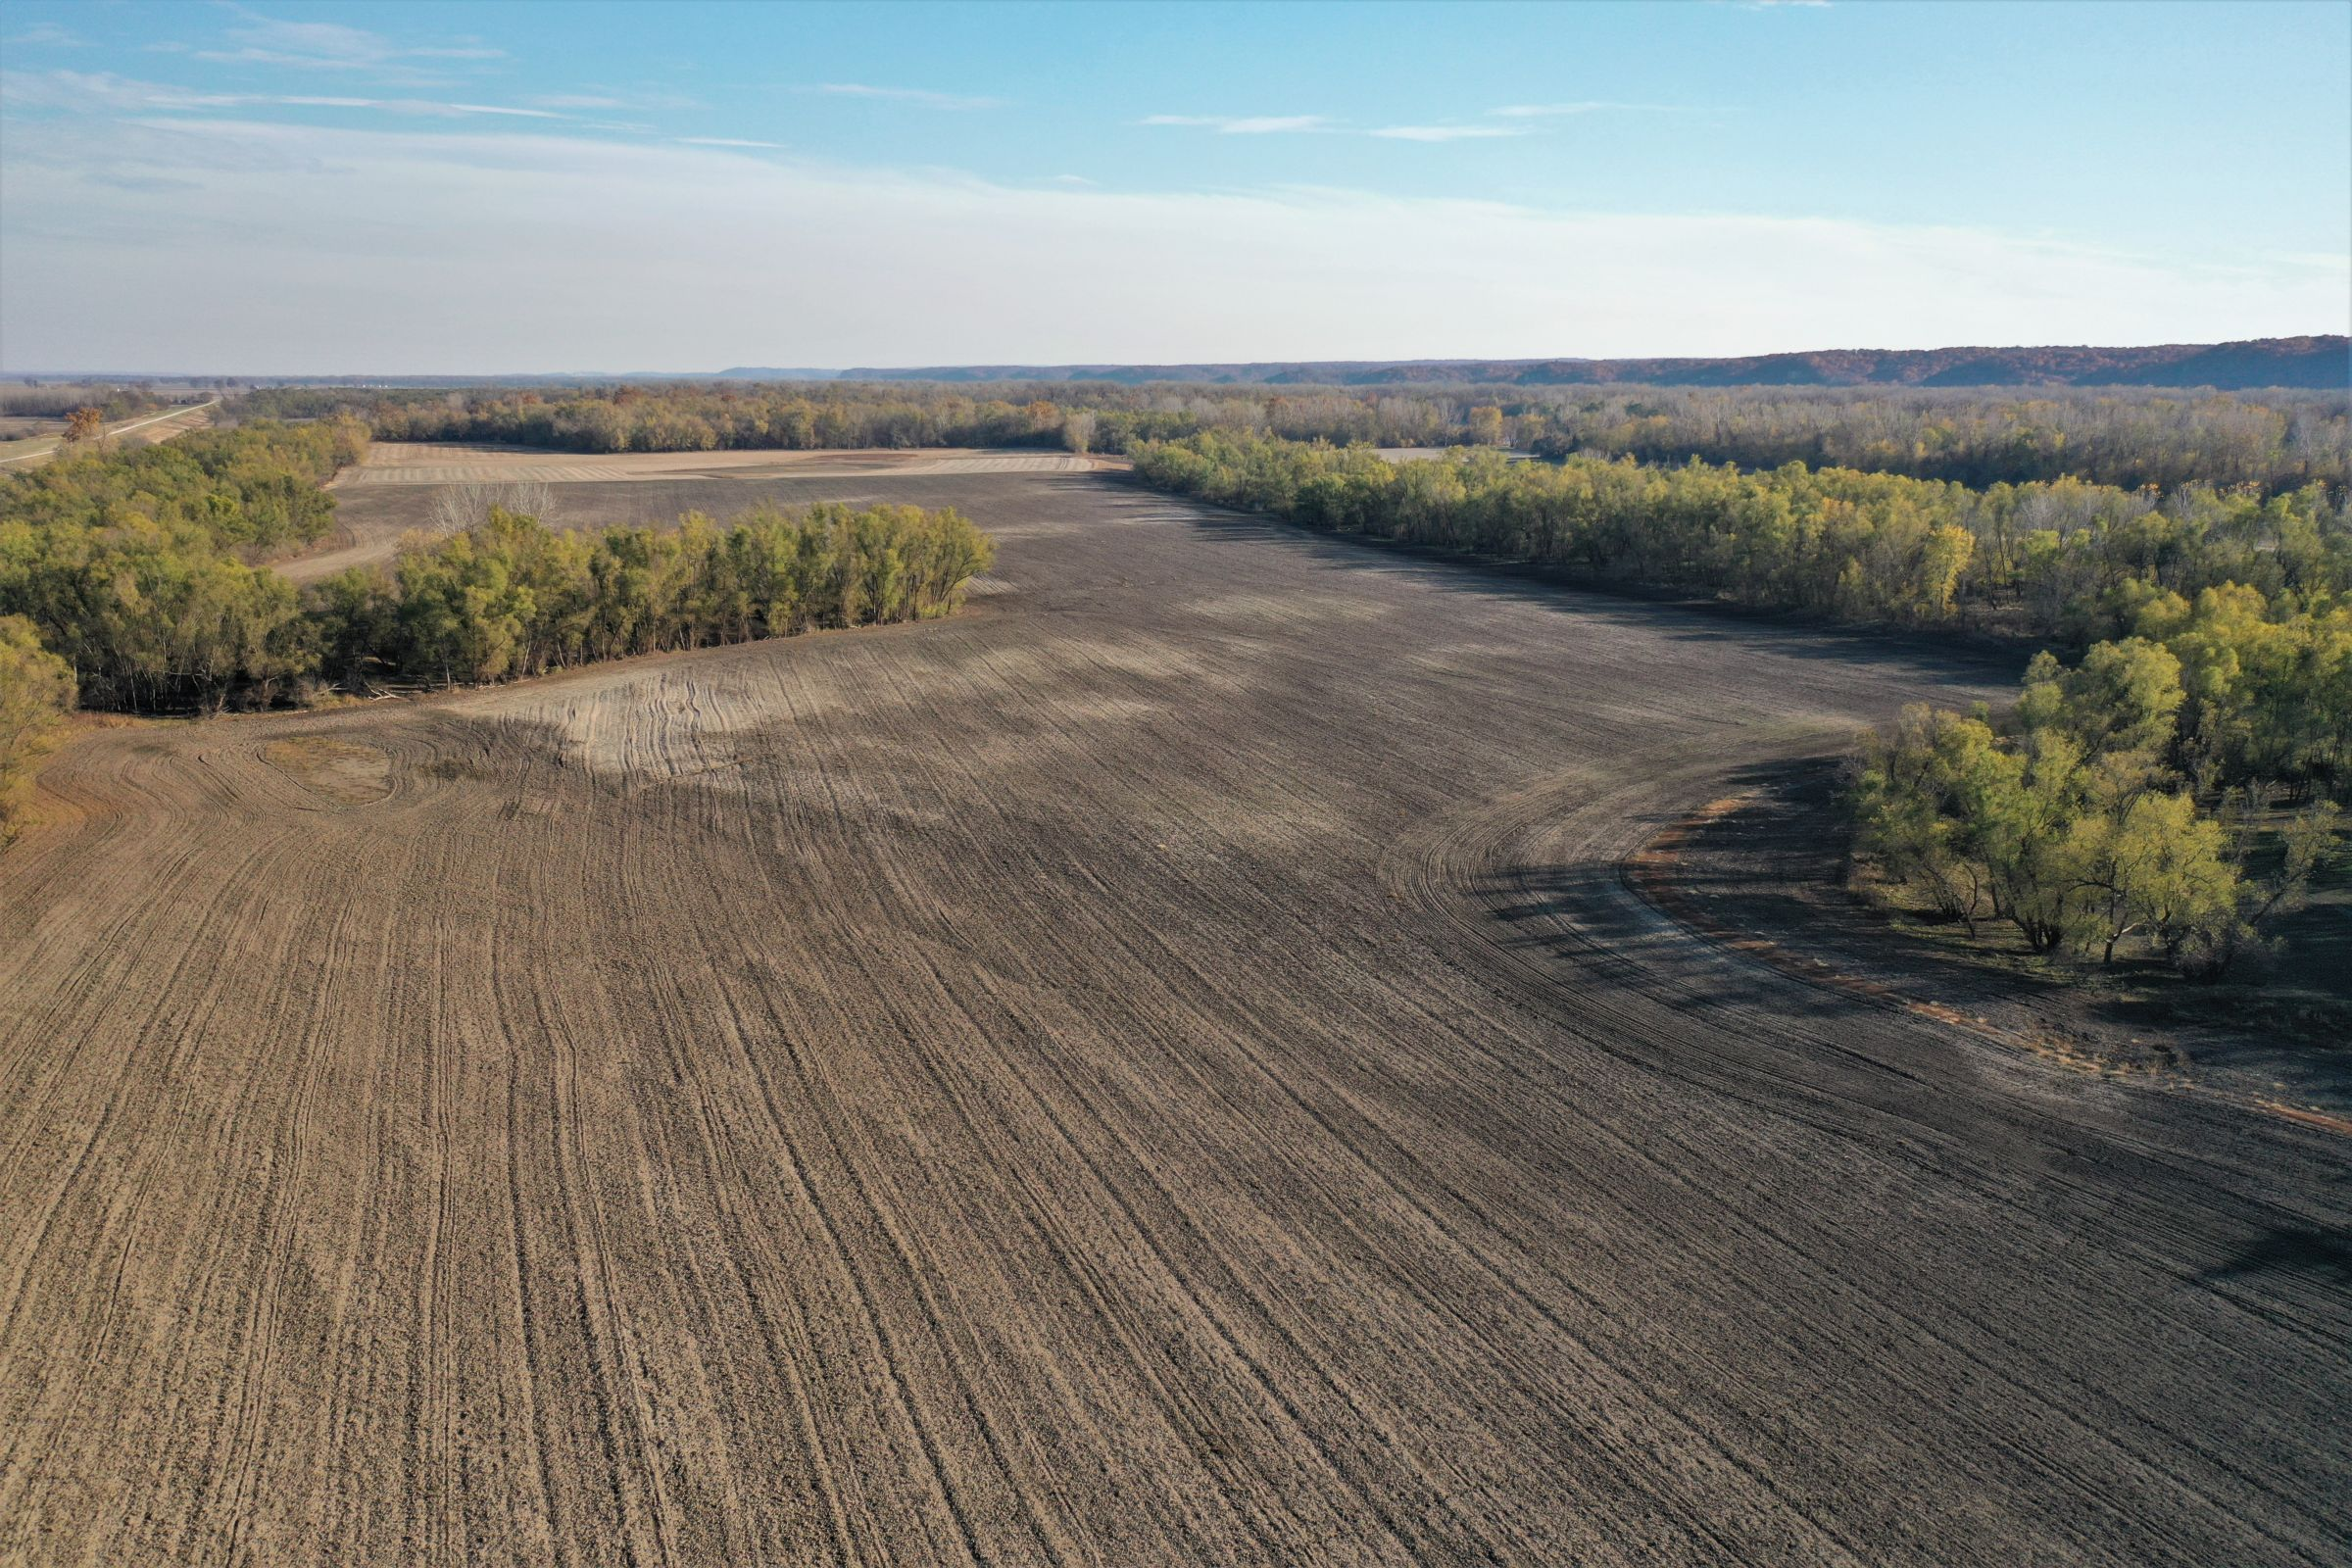 land-monroe-county-illinois-289-acres-listing-number-15266-2-2020-11-20-210641.jpg